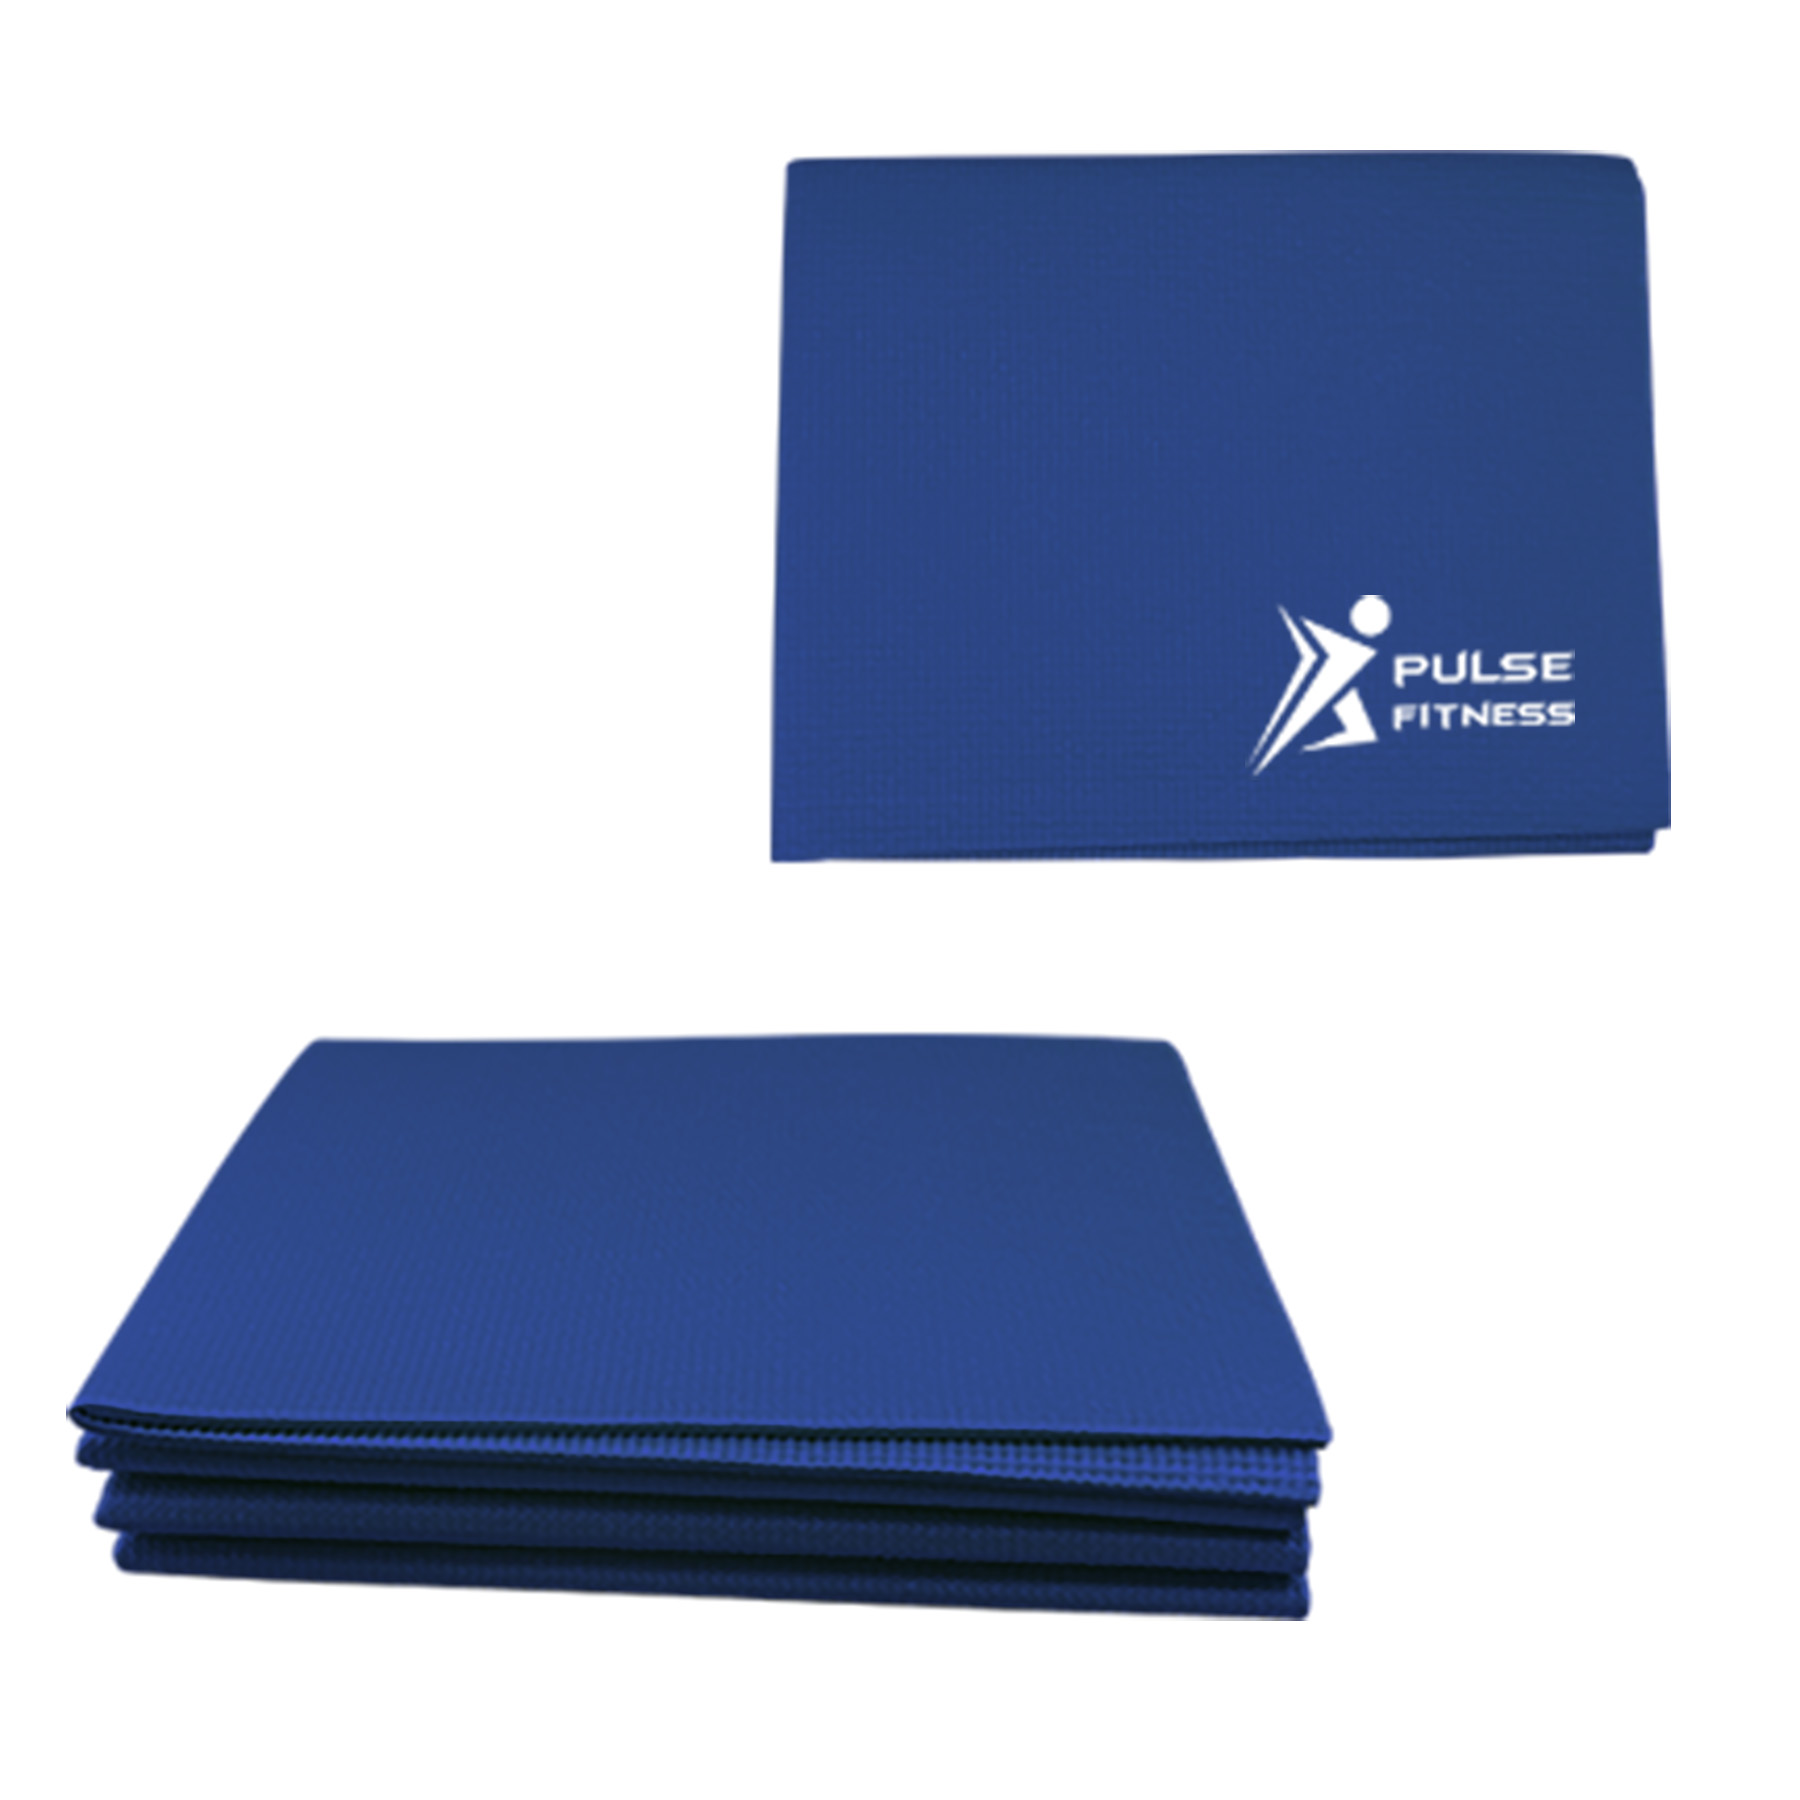 Lotus Bound Foldable Yoga Mat, YM8872, 1 Colour Imprint